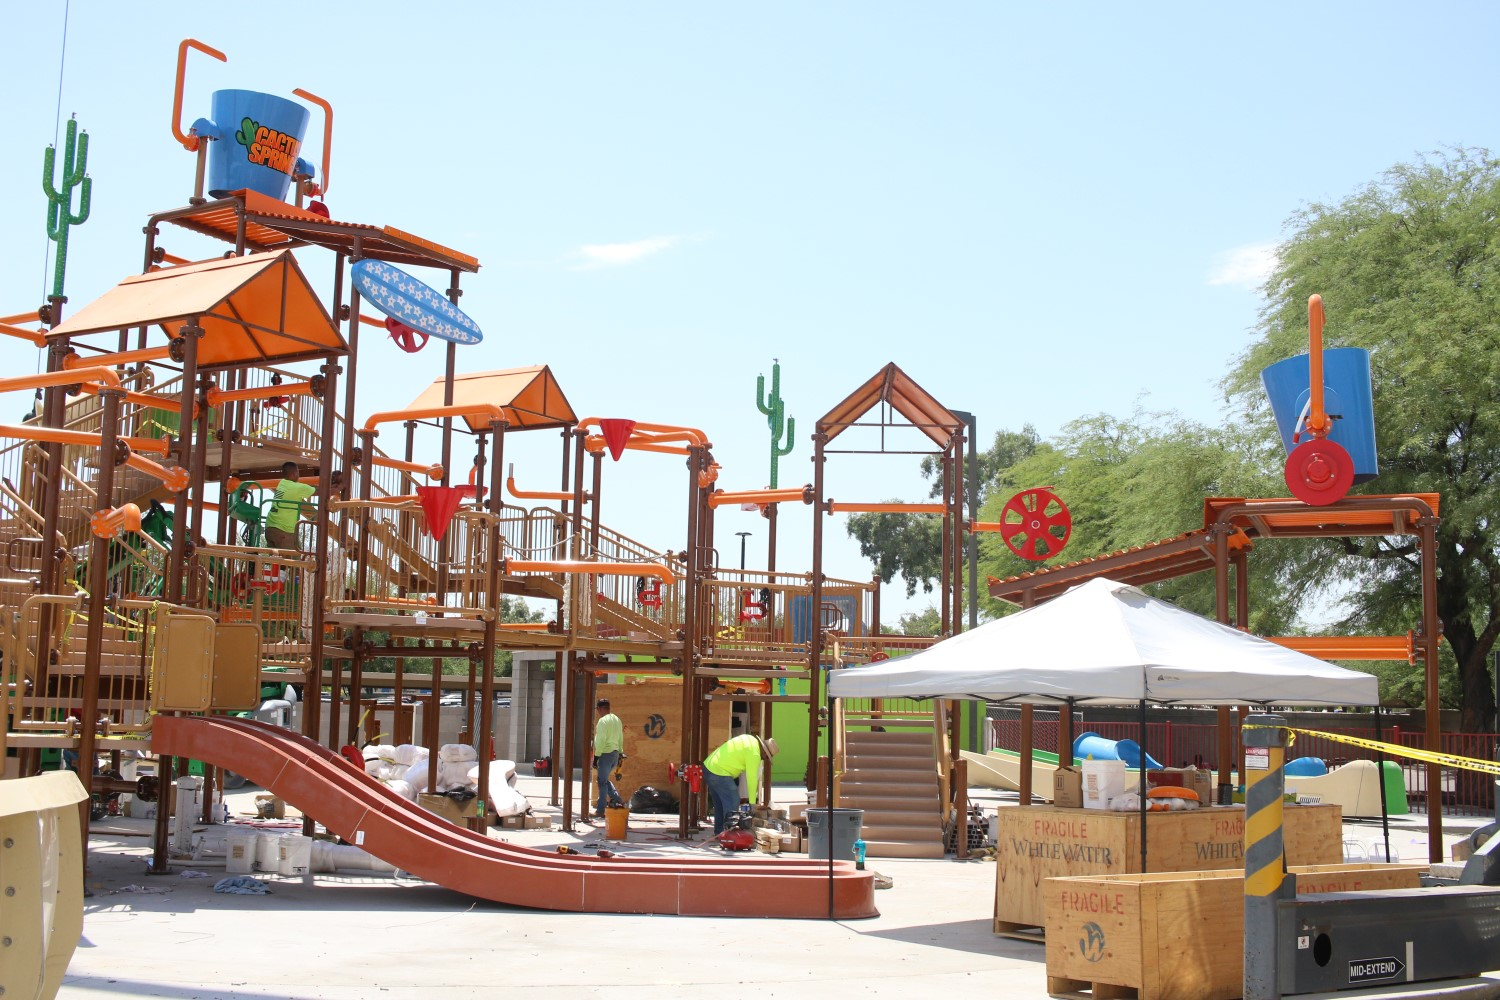 Construction of a splash pad facility